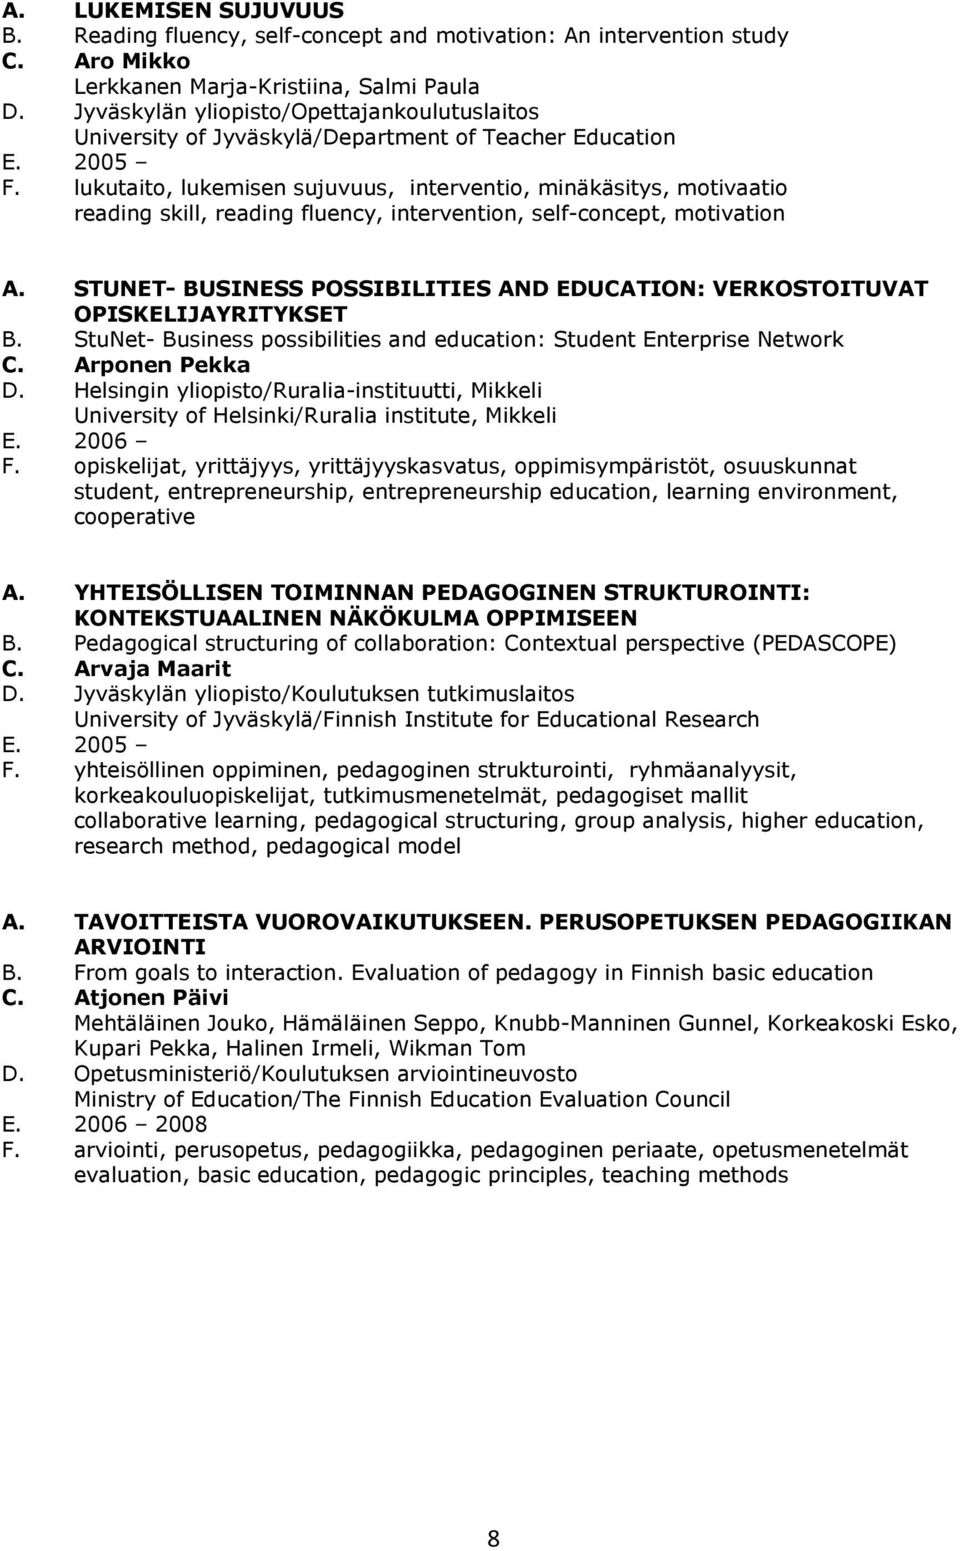 lukutaito, lukemisen sujuvuus, interventio, minäkäsitys, motivaatio reading skill, reading fluency, intervention, self-concept, motivation A.